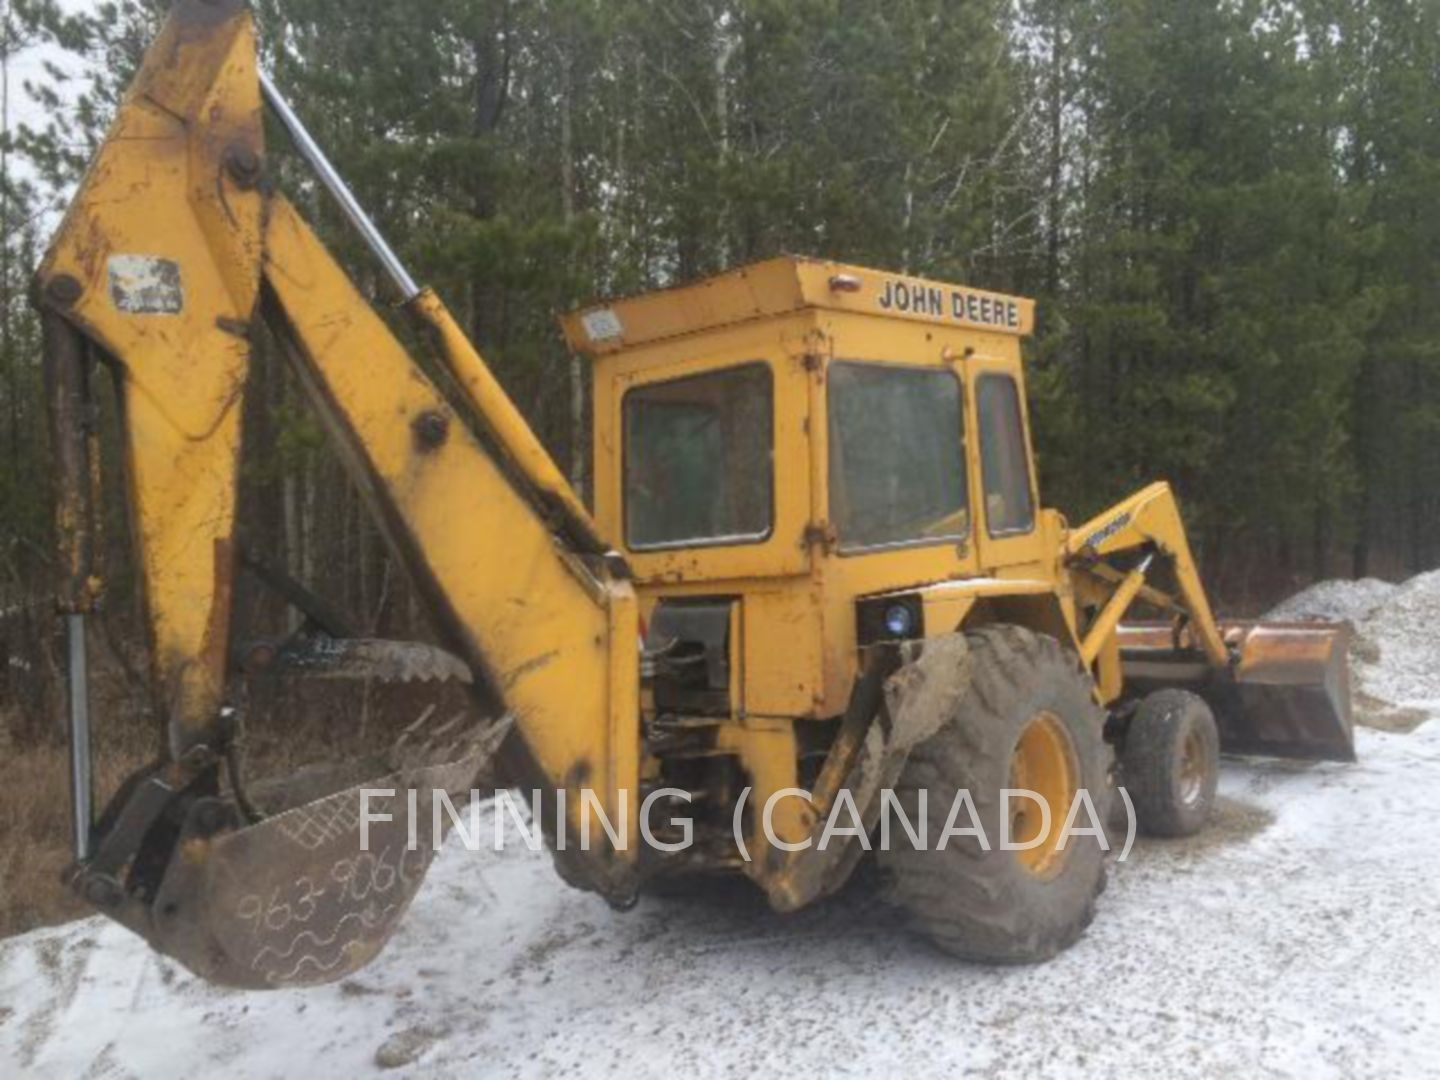 1975 John Deere 410D For Sale (3107380) from Finning CAT [3701] :: Construction Equipment Guide